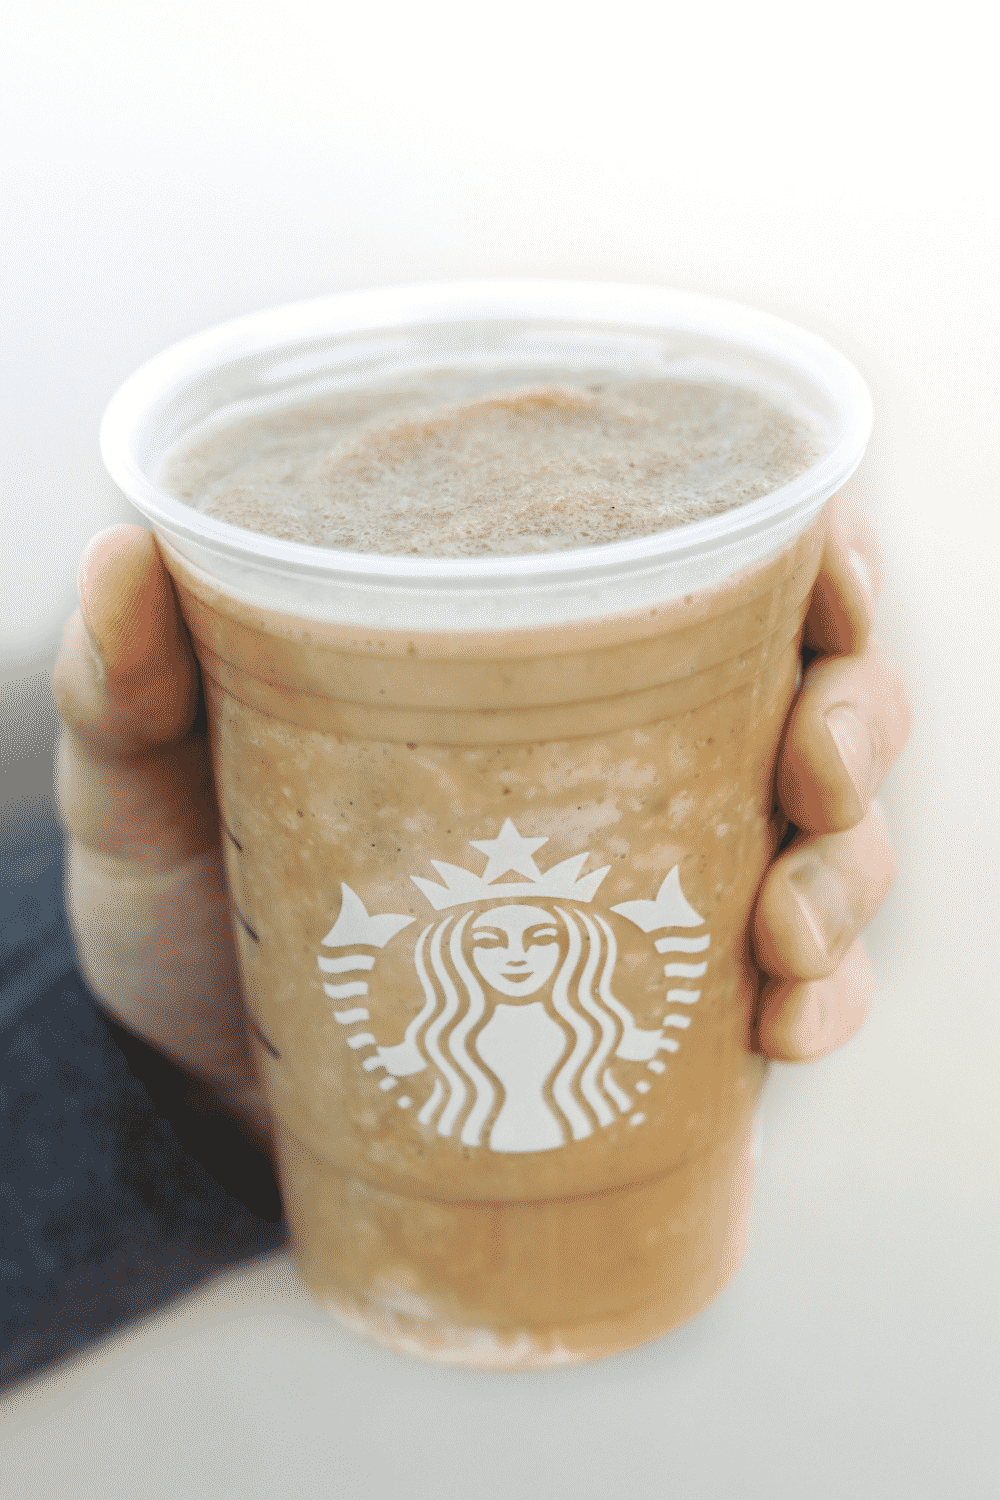 A hand holding a cup of Starbucks vegan caffe vanilla Frappuccino